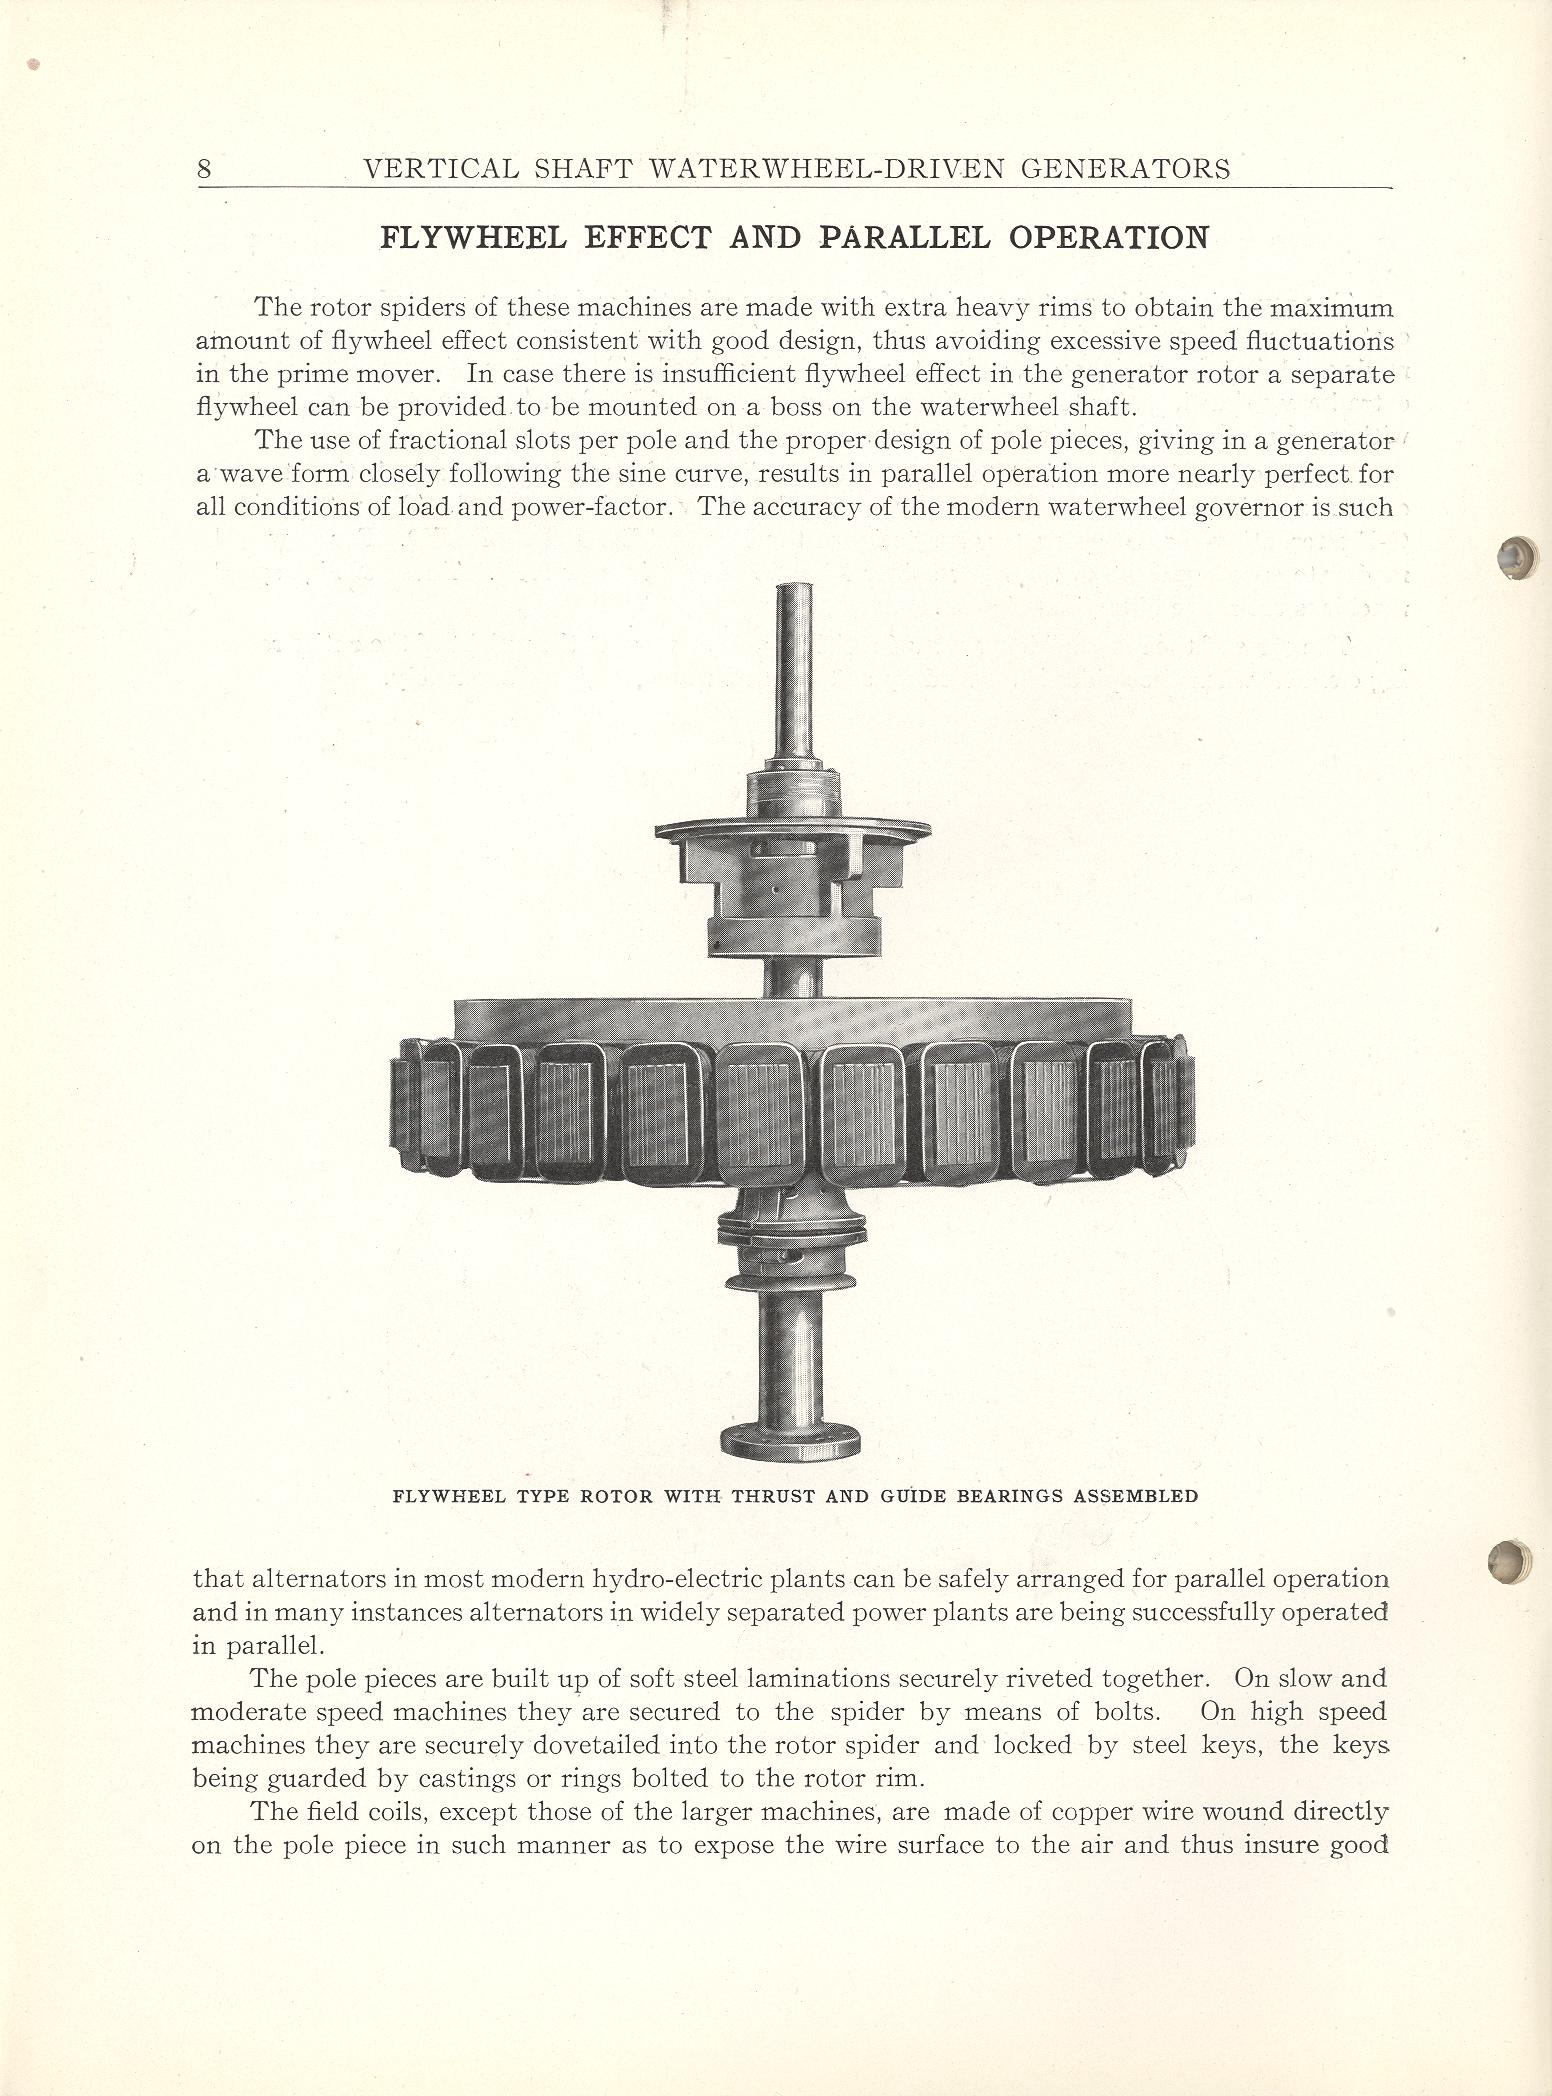 ... Shaft Water Wheel Driven Generators- General Electric Web Page